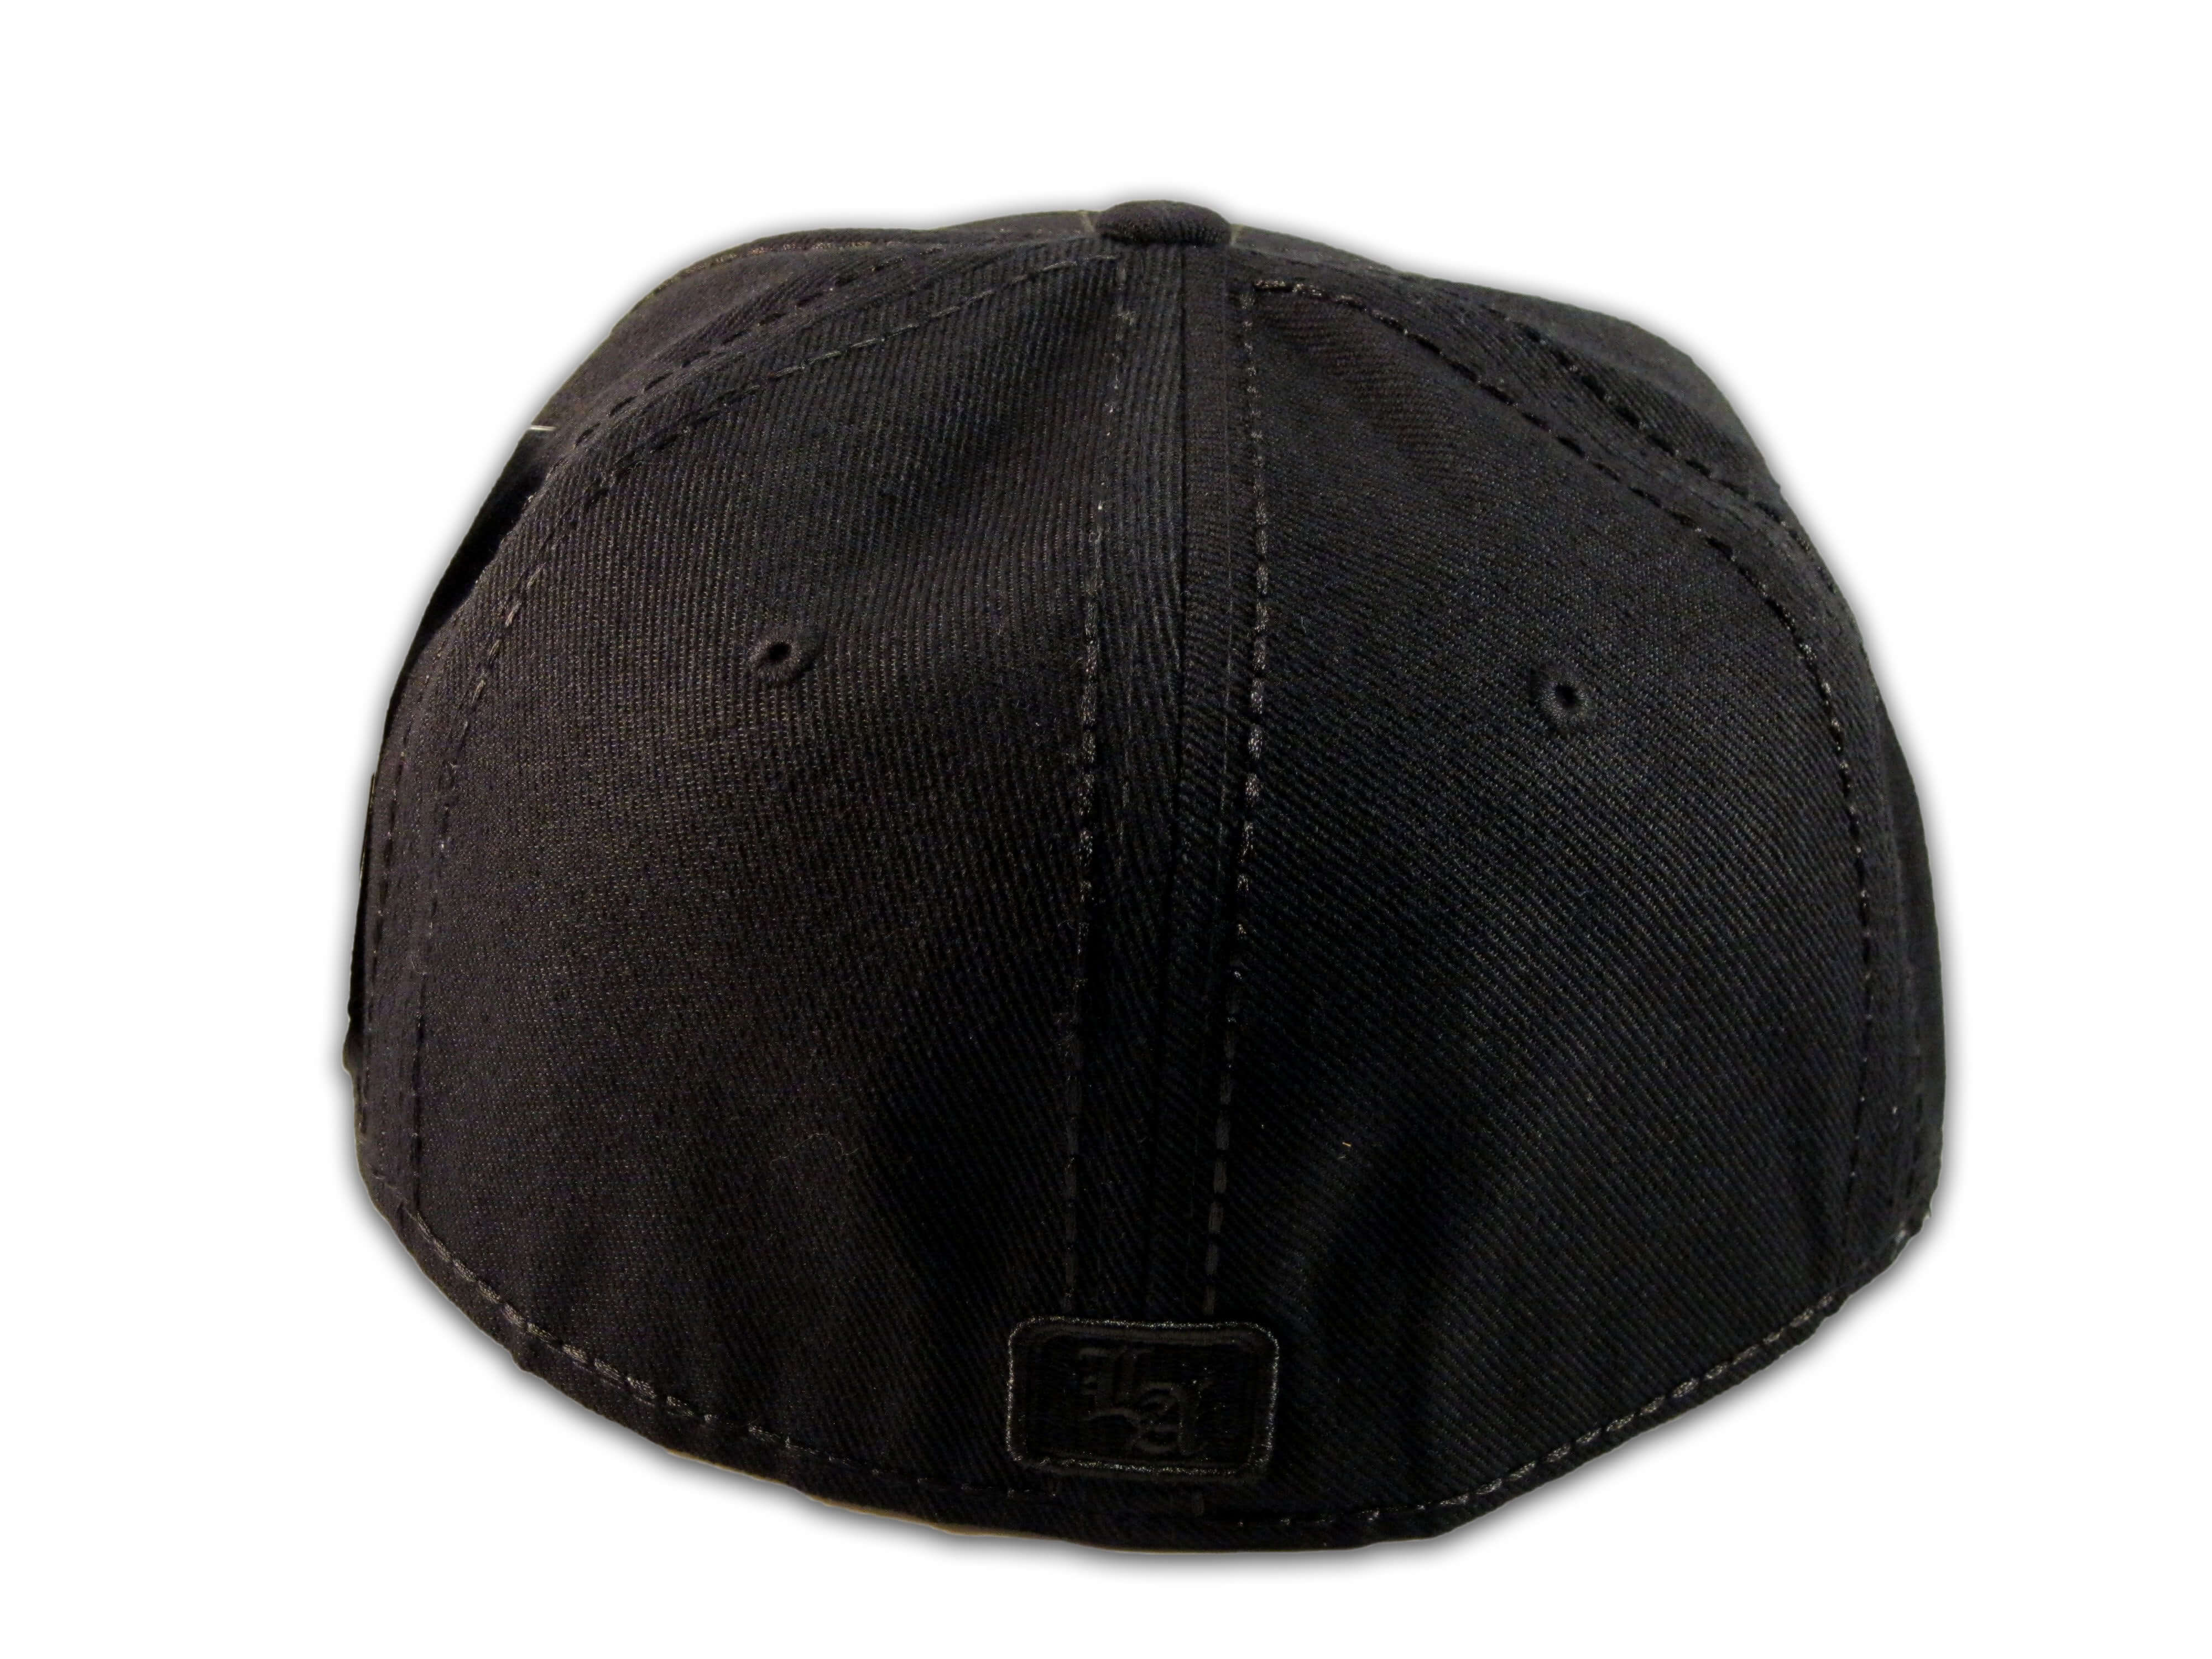 352fc92a44569 Los Angeles LA on Fitted Black Flat Brim Ball Cap Hip Hop Style Hat ...